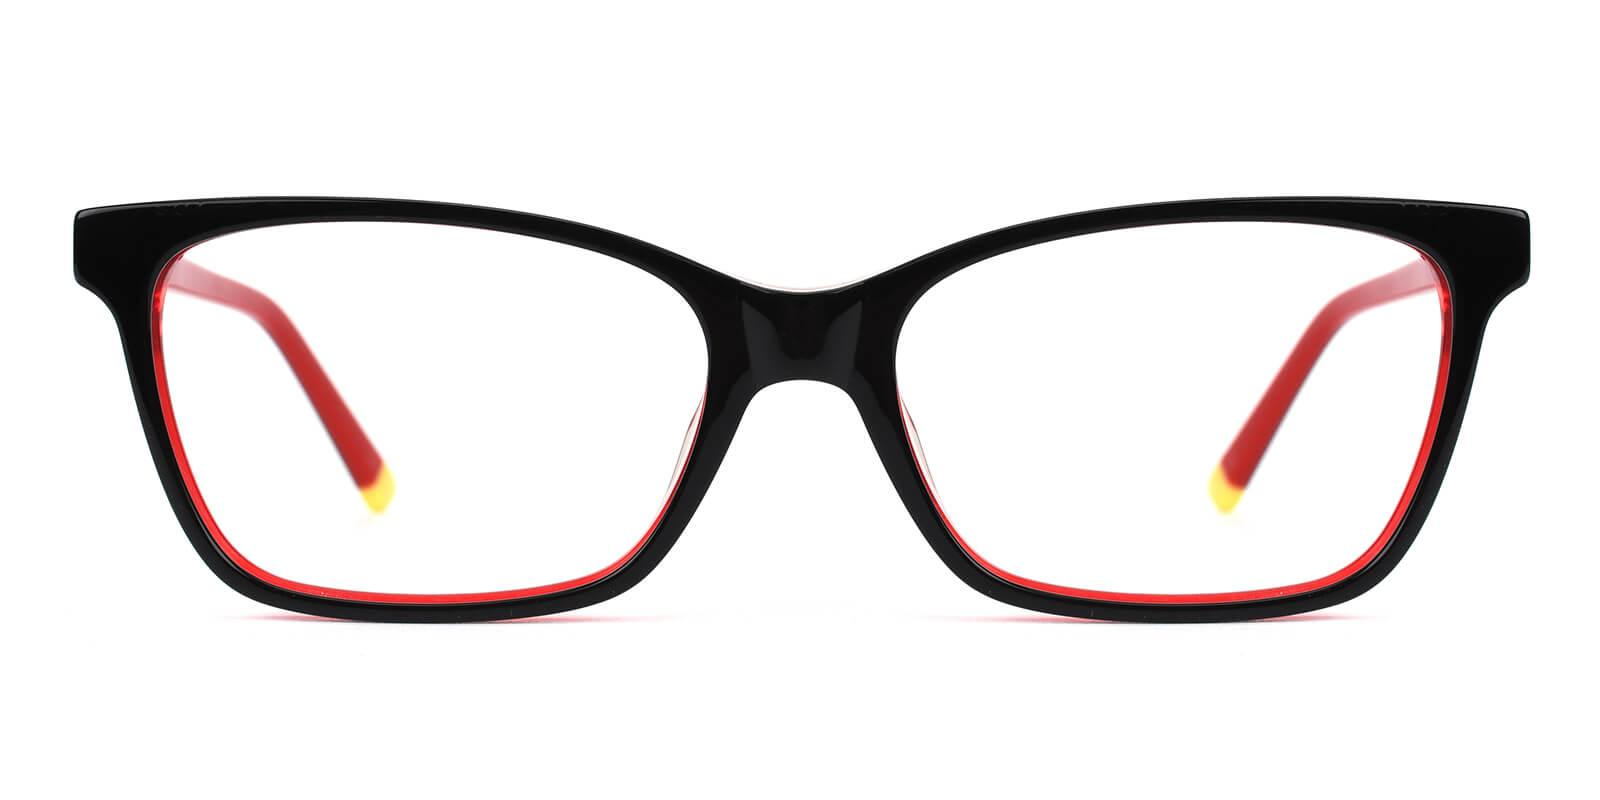 Waferay-Red-Cat-Acetate-Eyeglasses-additional2